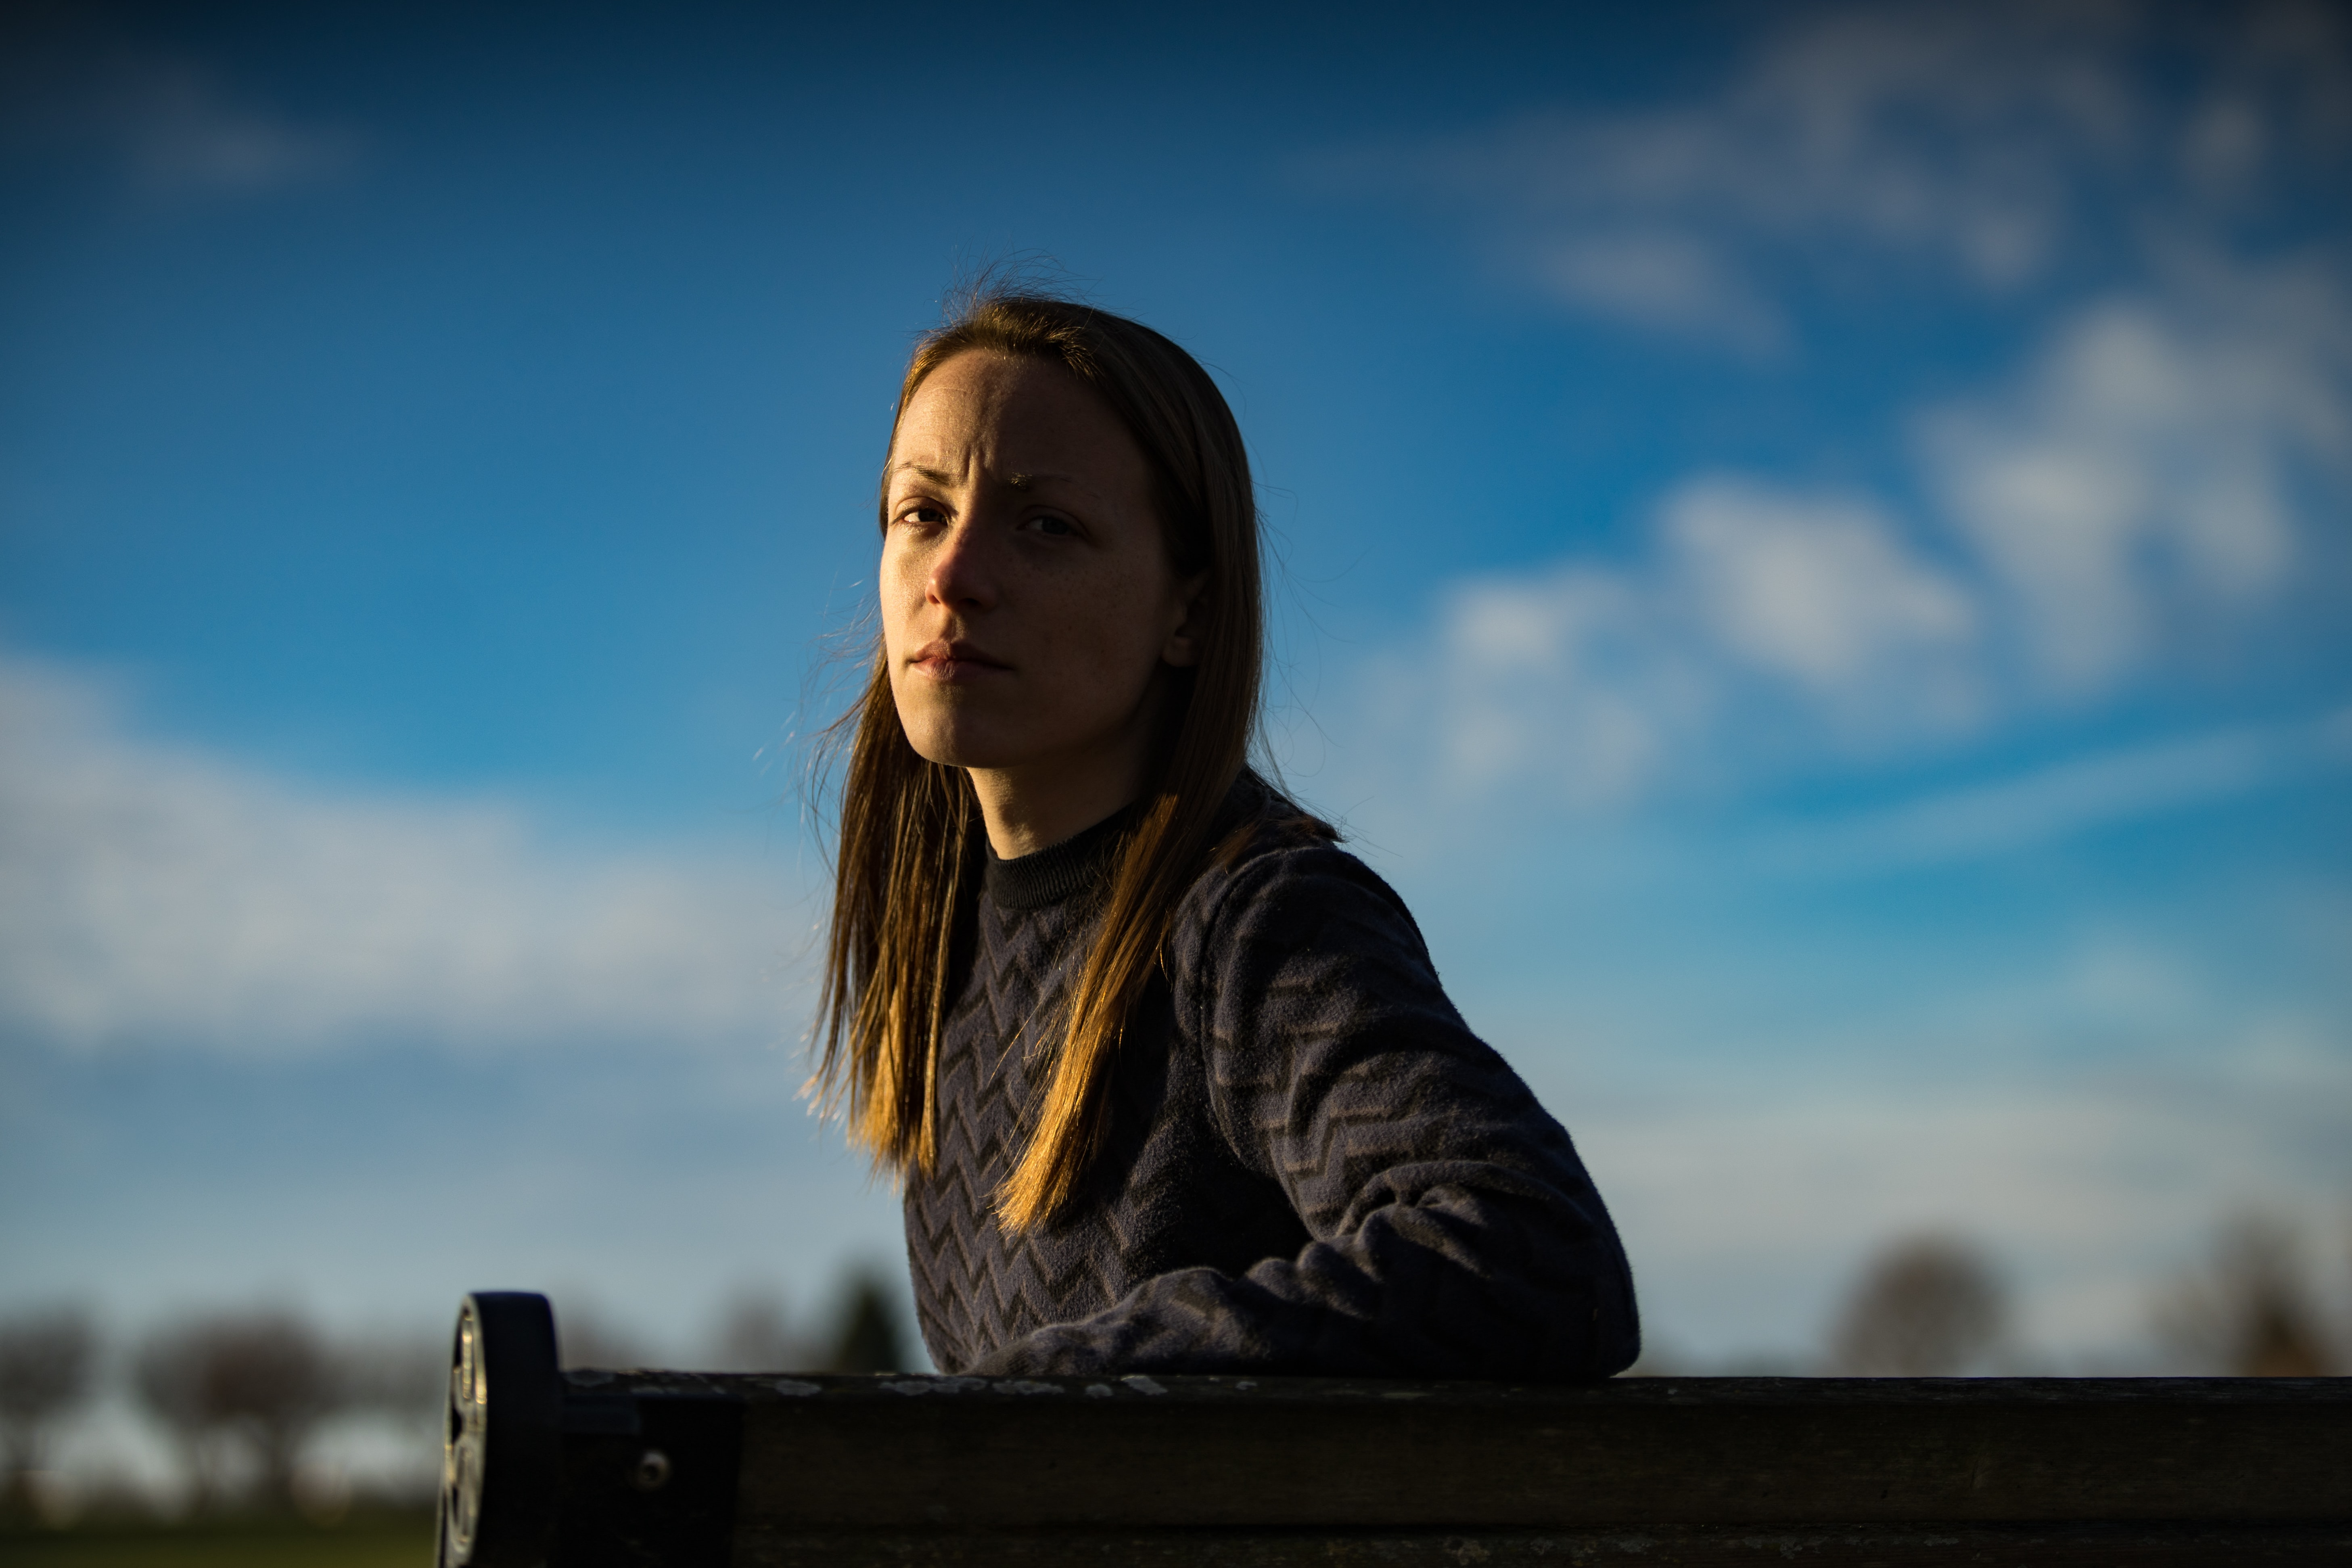 Woman sits alone on a park bench in partial shadow